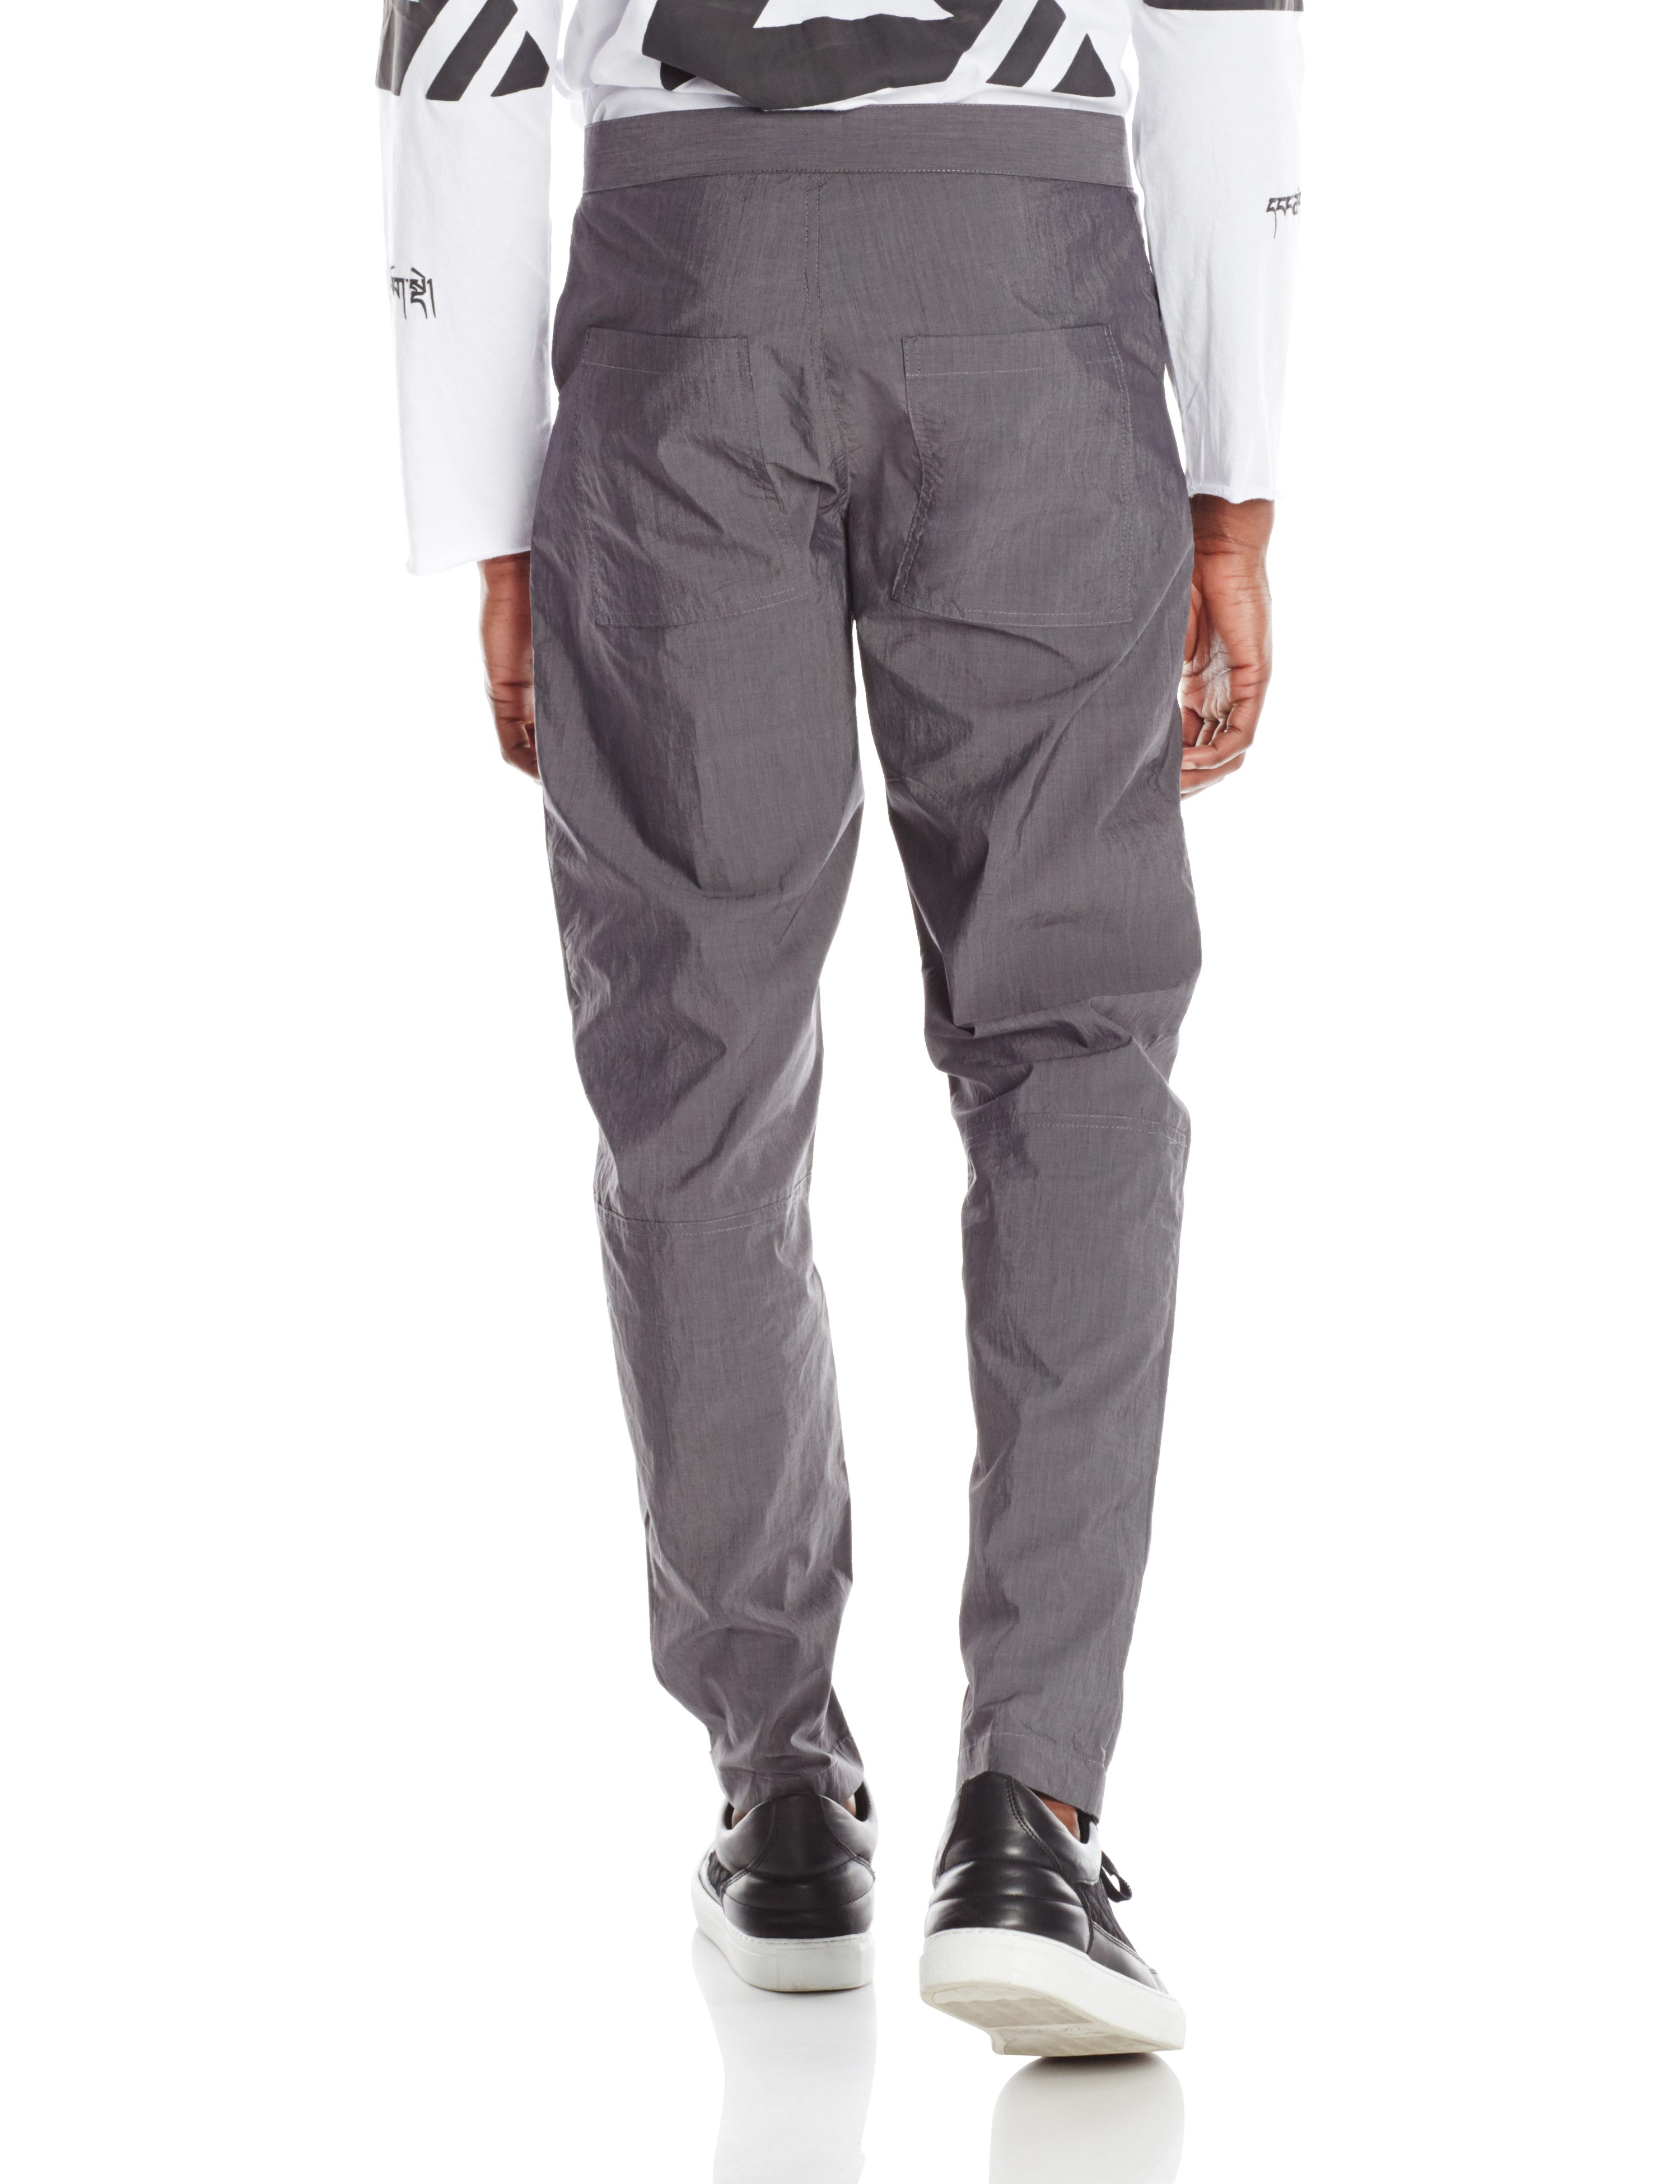 BACK-HACKER PANT DARK GRAY.0427